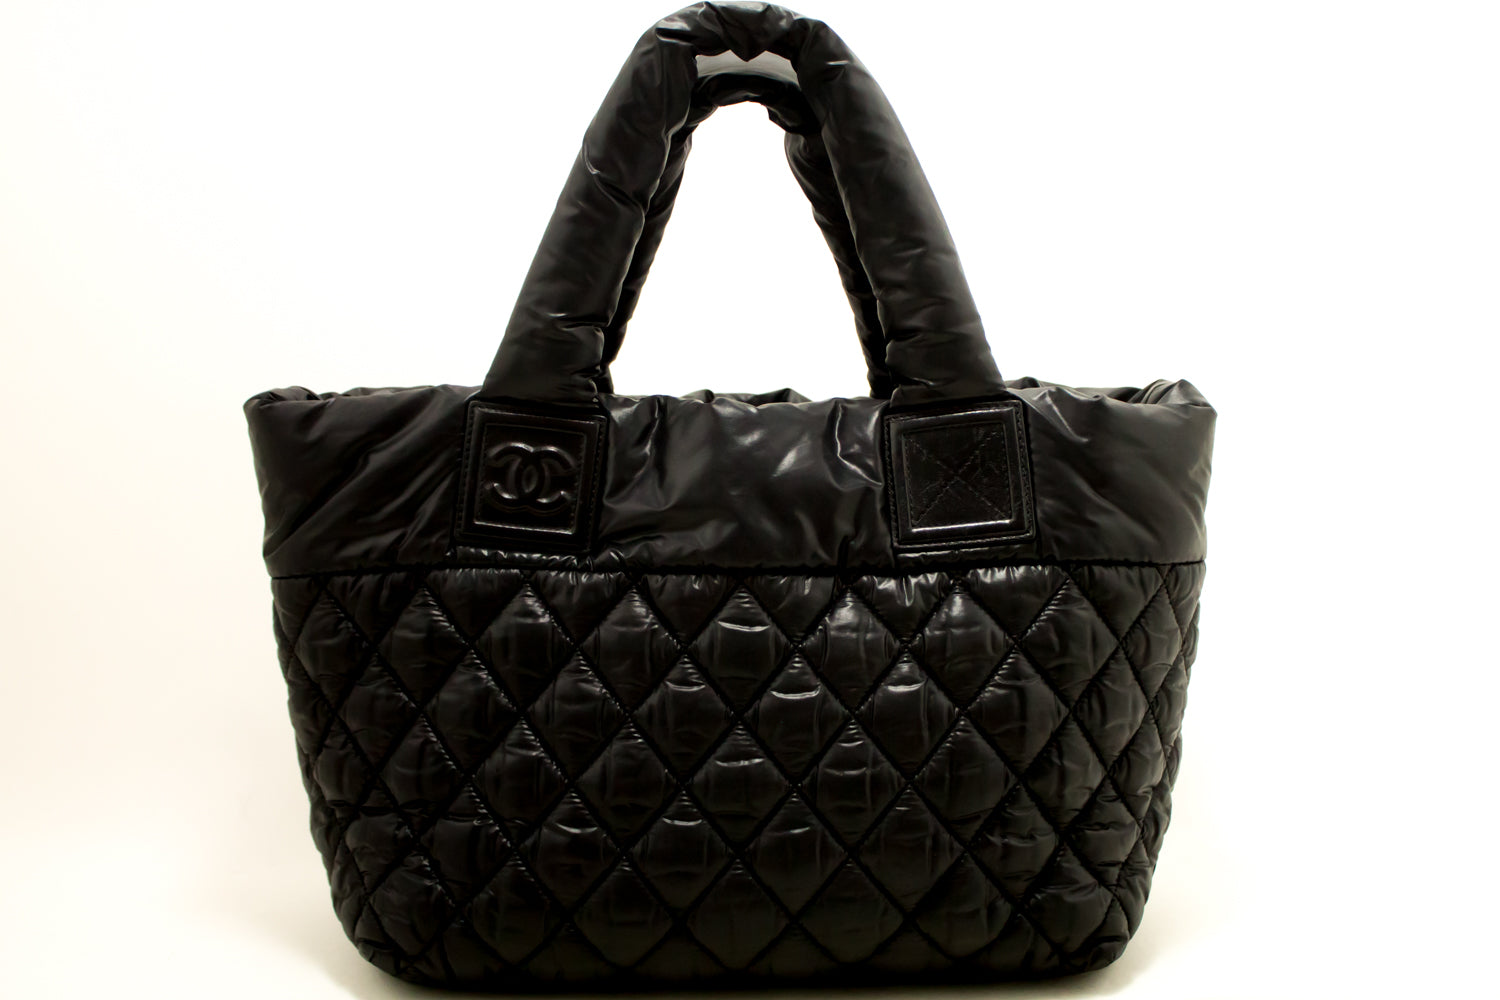 842a006b71a4 ... CHANEL Coco Cocoon Nylon Large Tote Bag Black Bordeaux Reversible k93- Chanel-hannari- ...